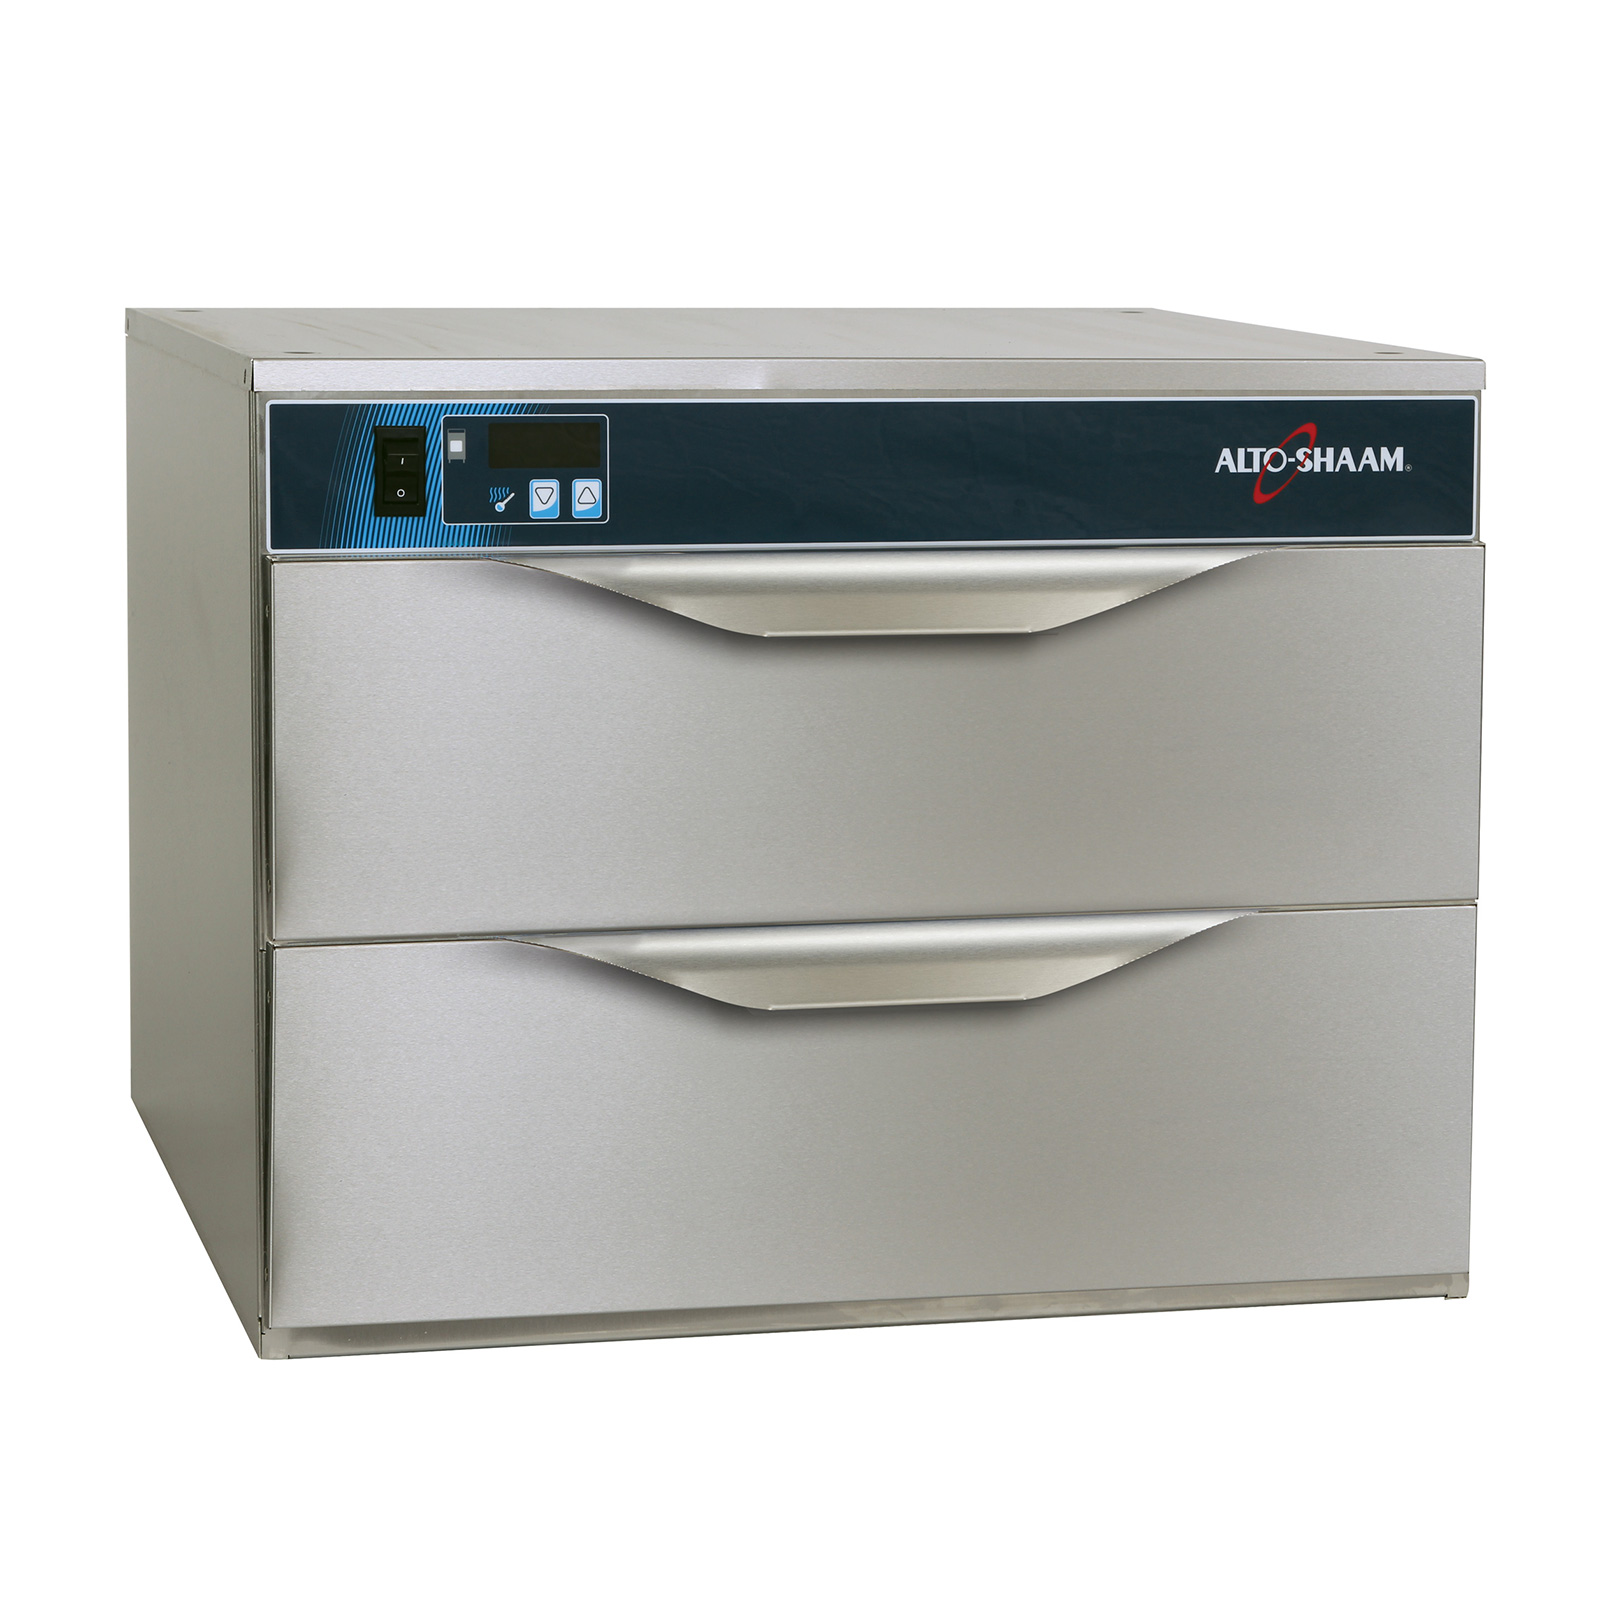 Alto-Shaam 500-2D warming drawer, free standing